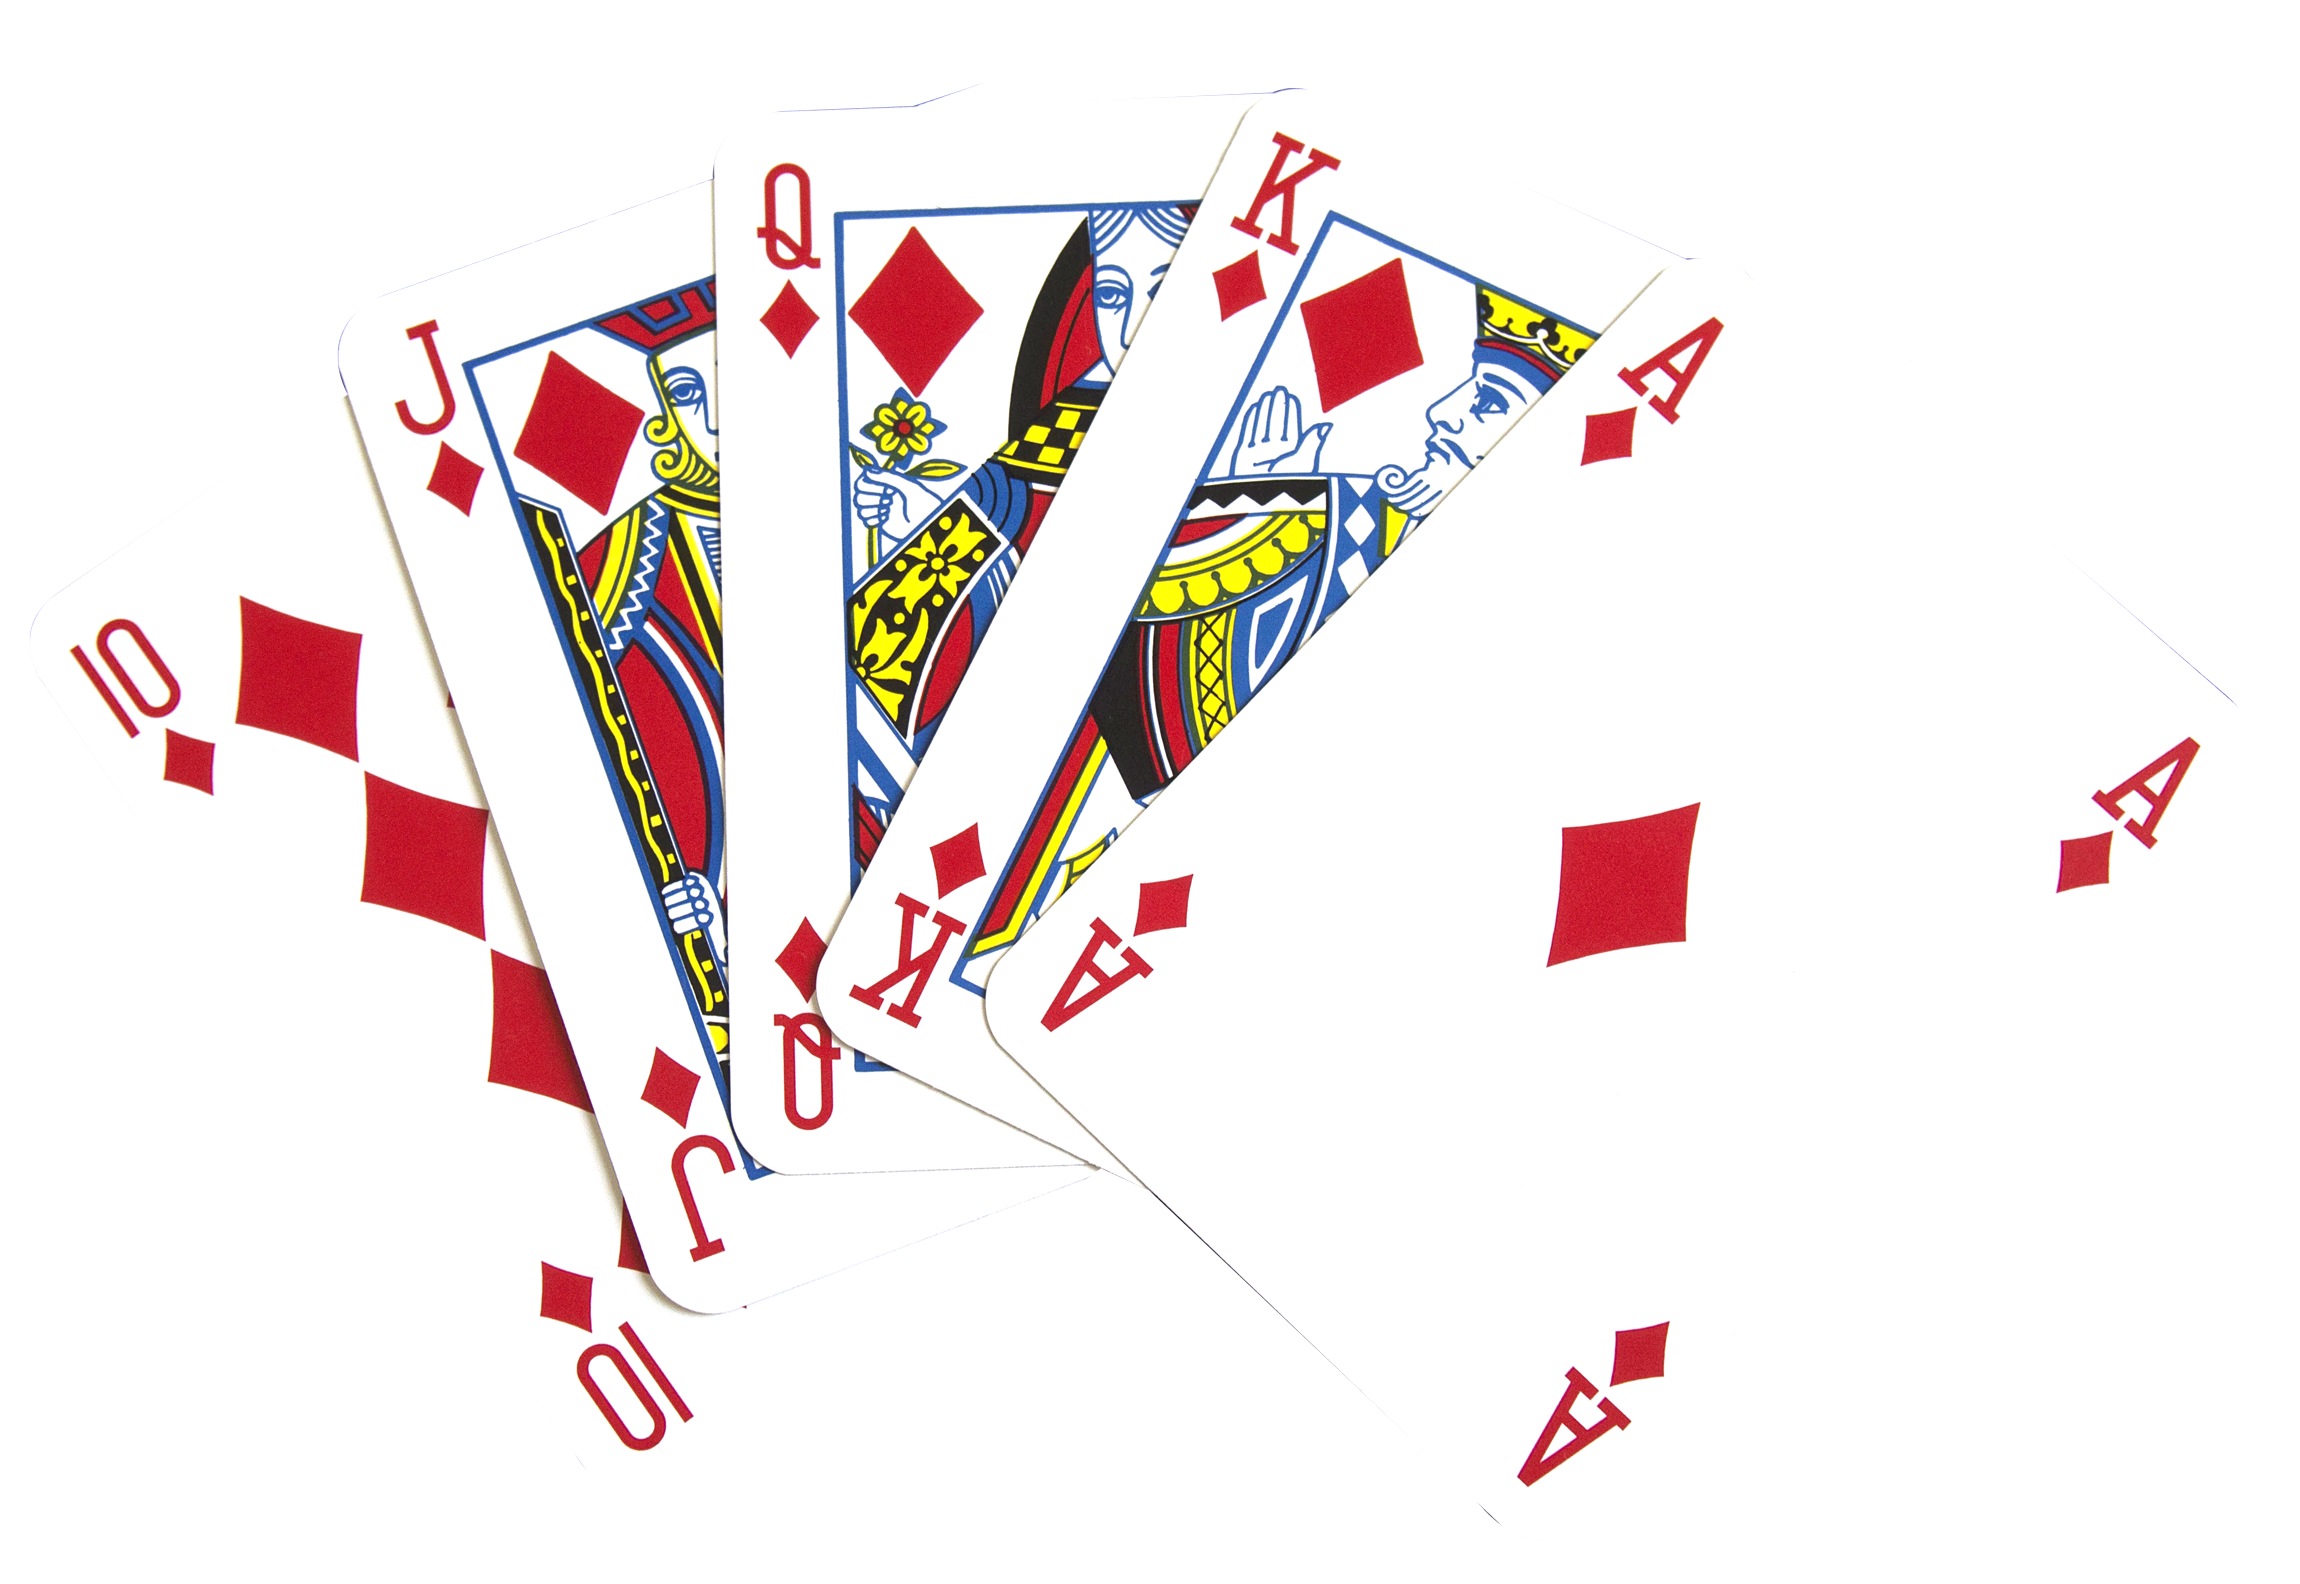 Card images png. Playing cards transparent image